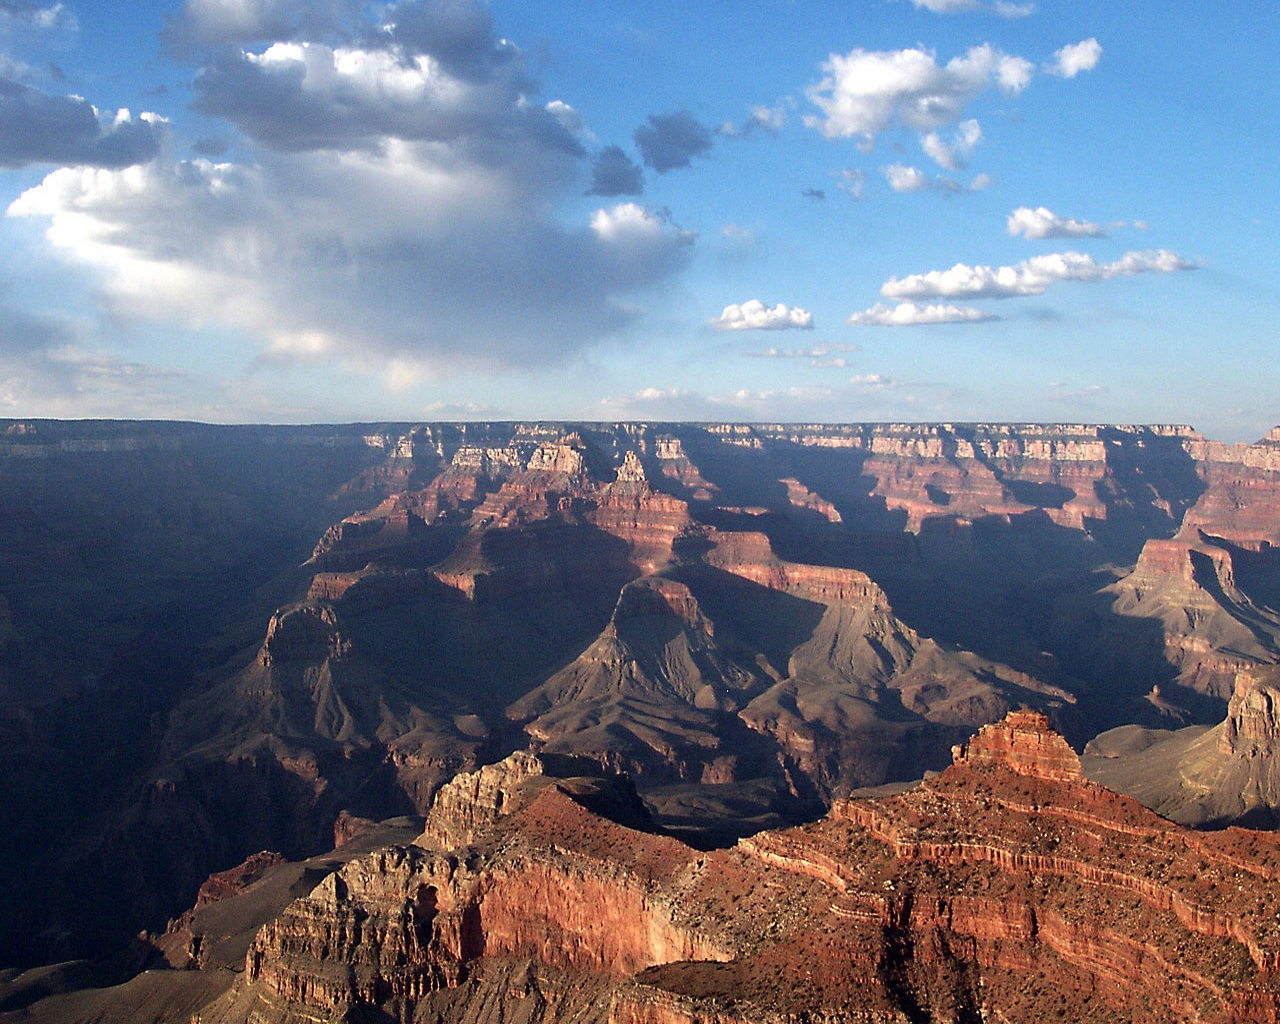 grand canyon gcse geography coursework The grand canyon is about 300kms south east of the gambling city of las vega it is in the desert state of arizona in the south west of the country called the usa.